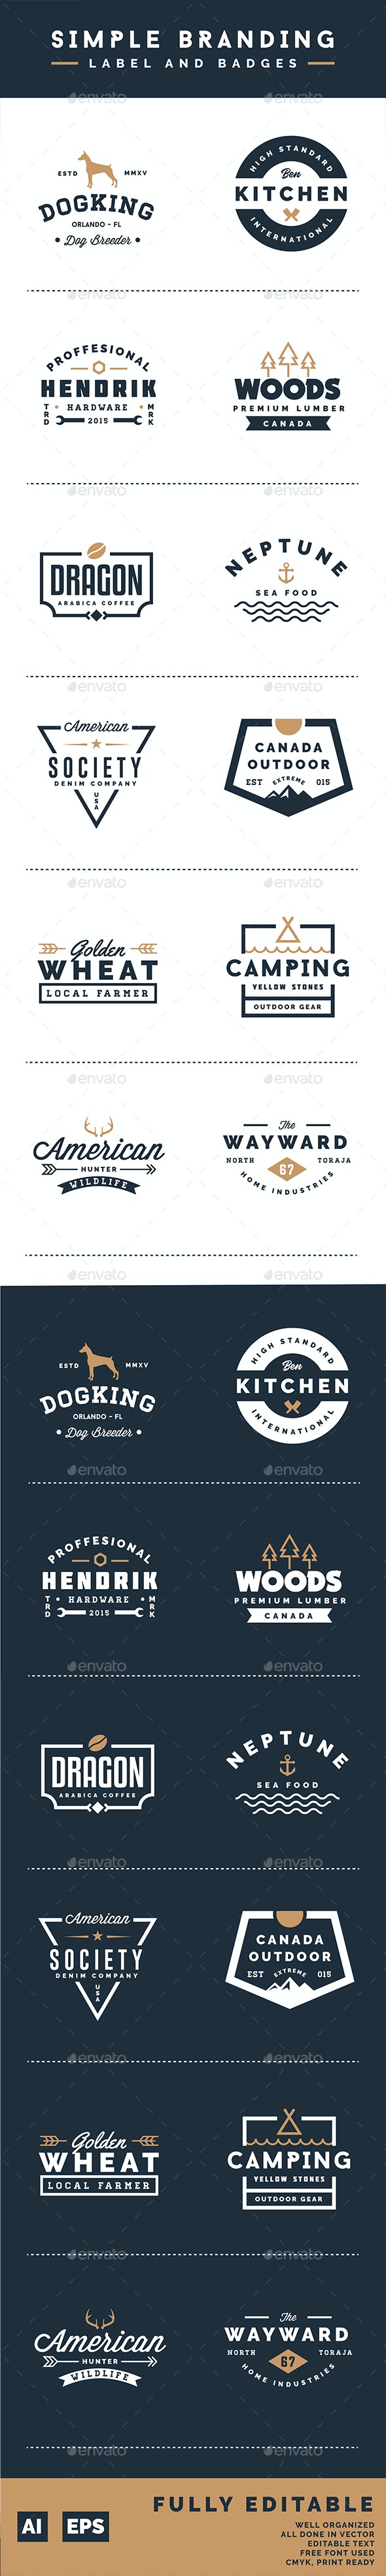 Simple Branding Labels and Badges